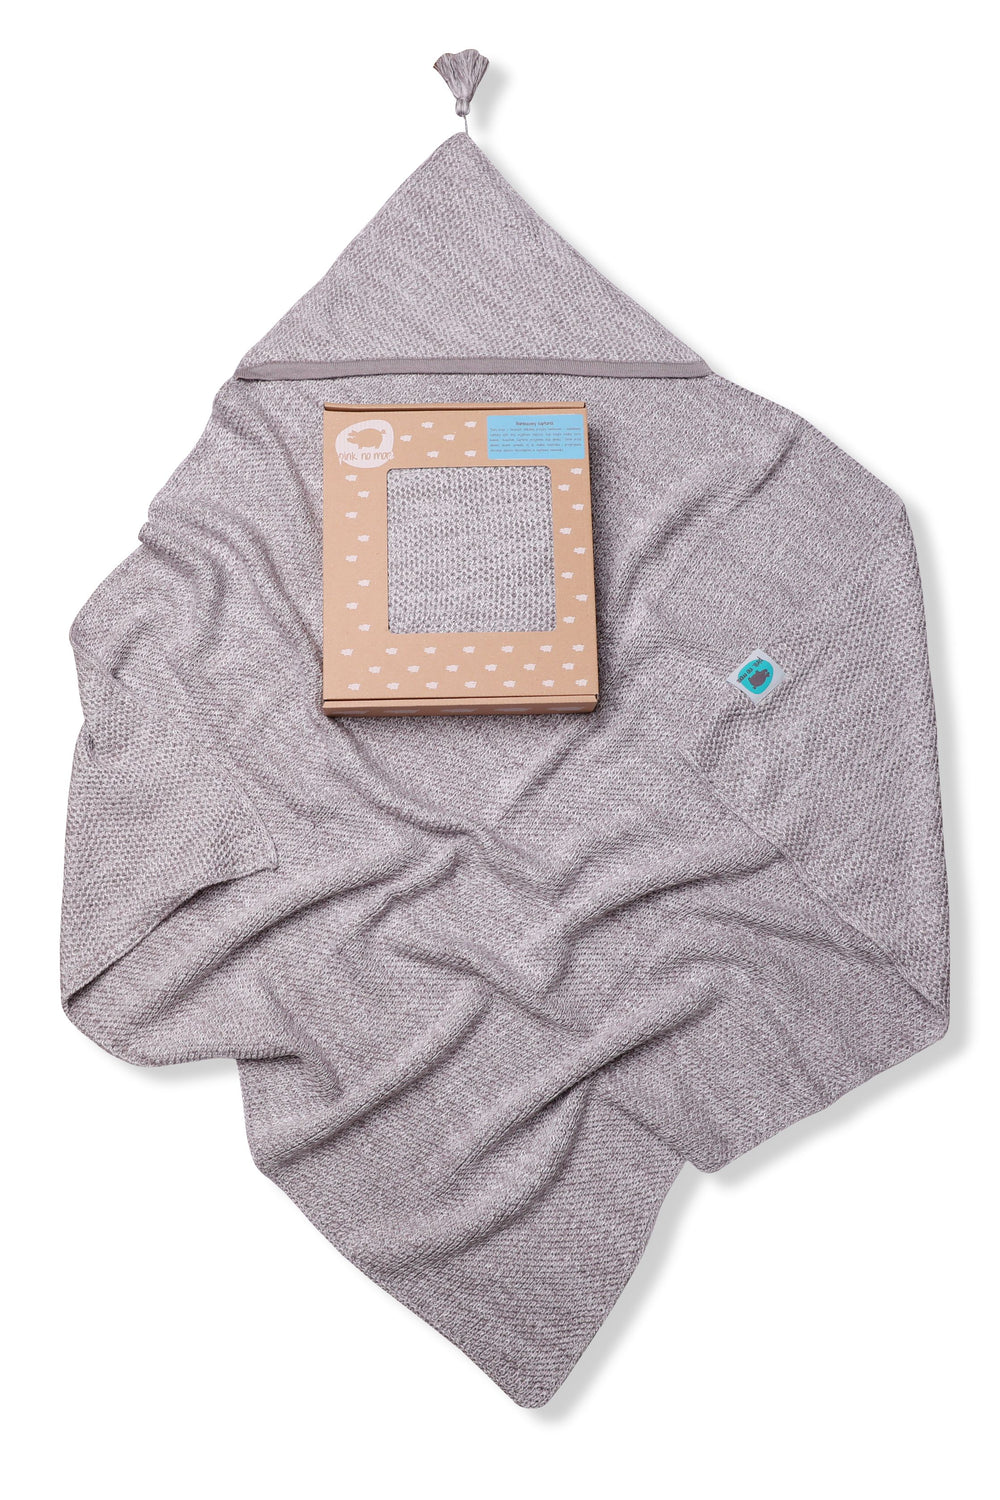 KNITTED BLANKET WITH HOOD - GREY - Babyllama store